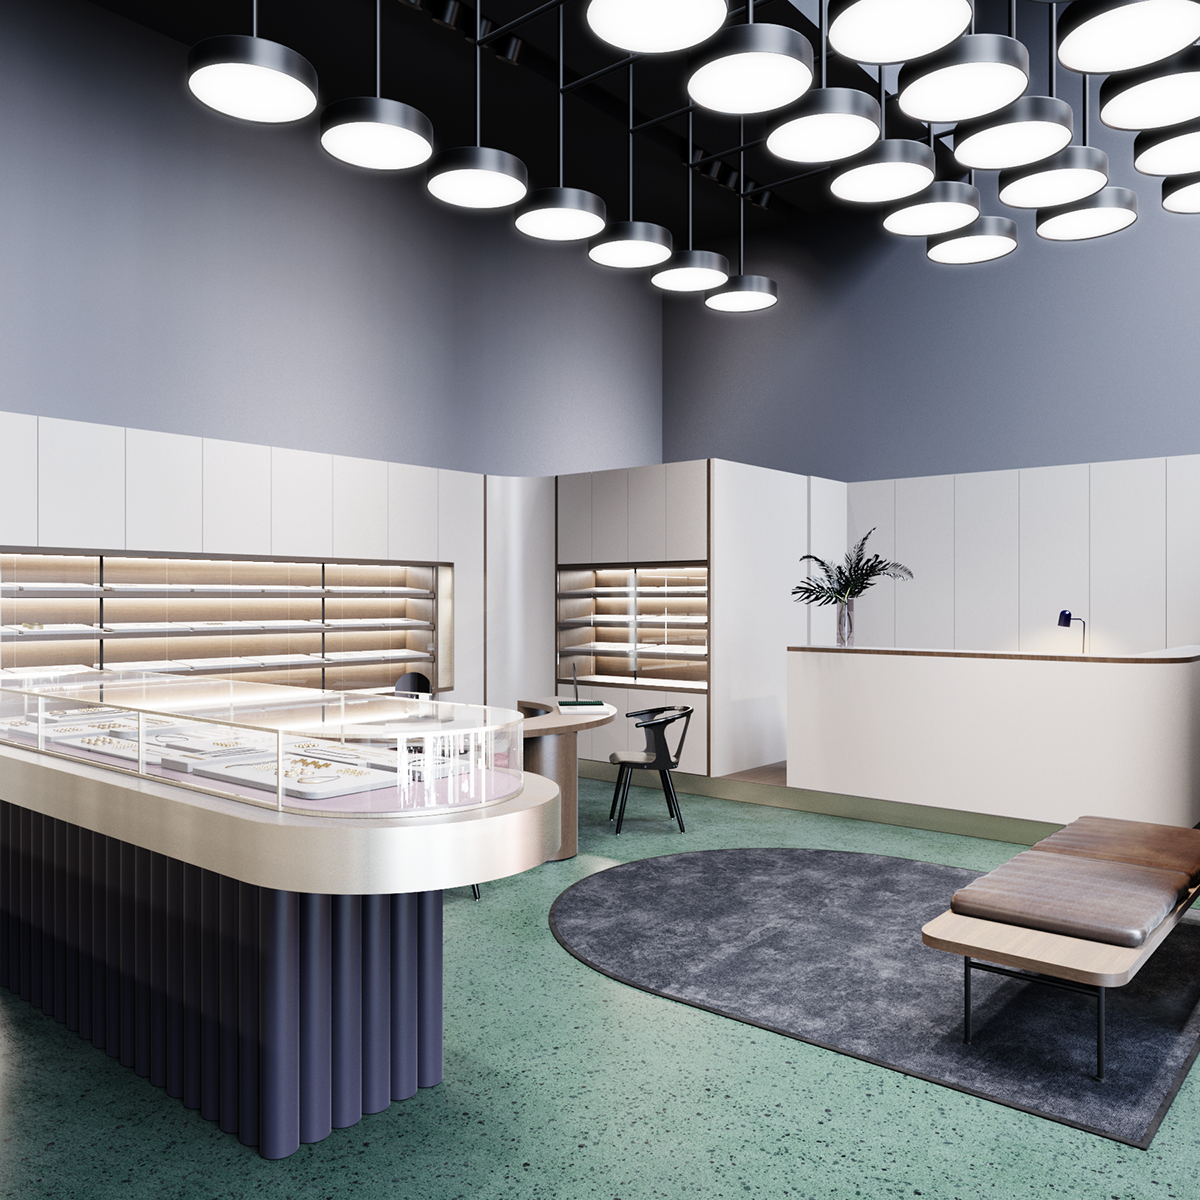 Jewelry Store On Behance   Look At That Alternative To Overhead Lighting |  City Lighting Products · Retail SpaceCommercial InteriorsJewelry ...